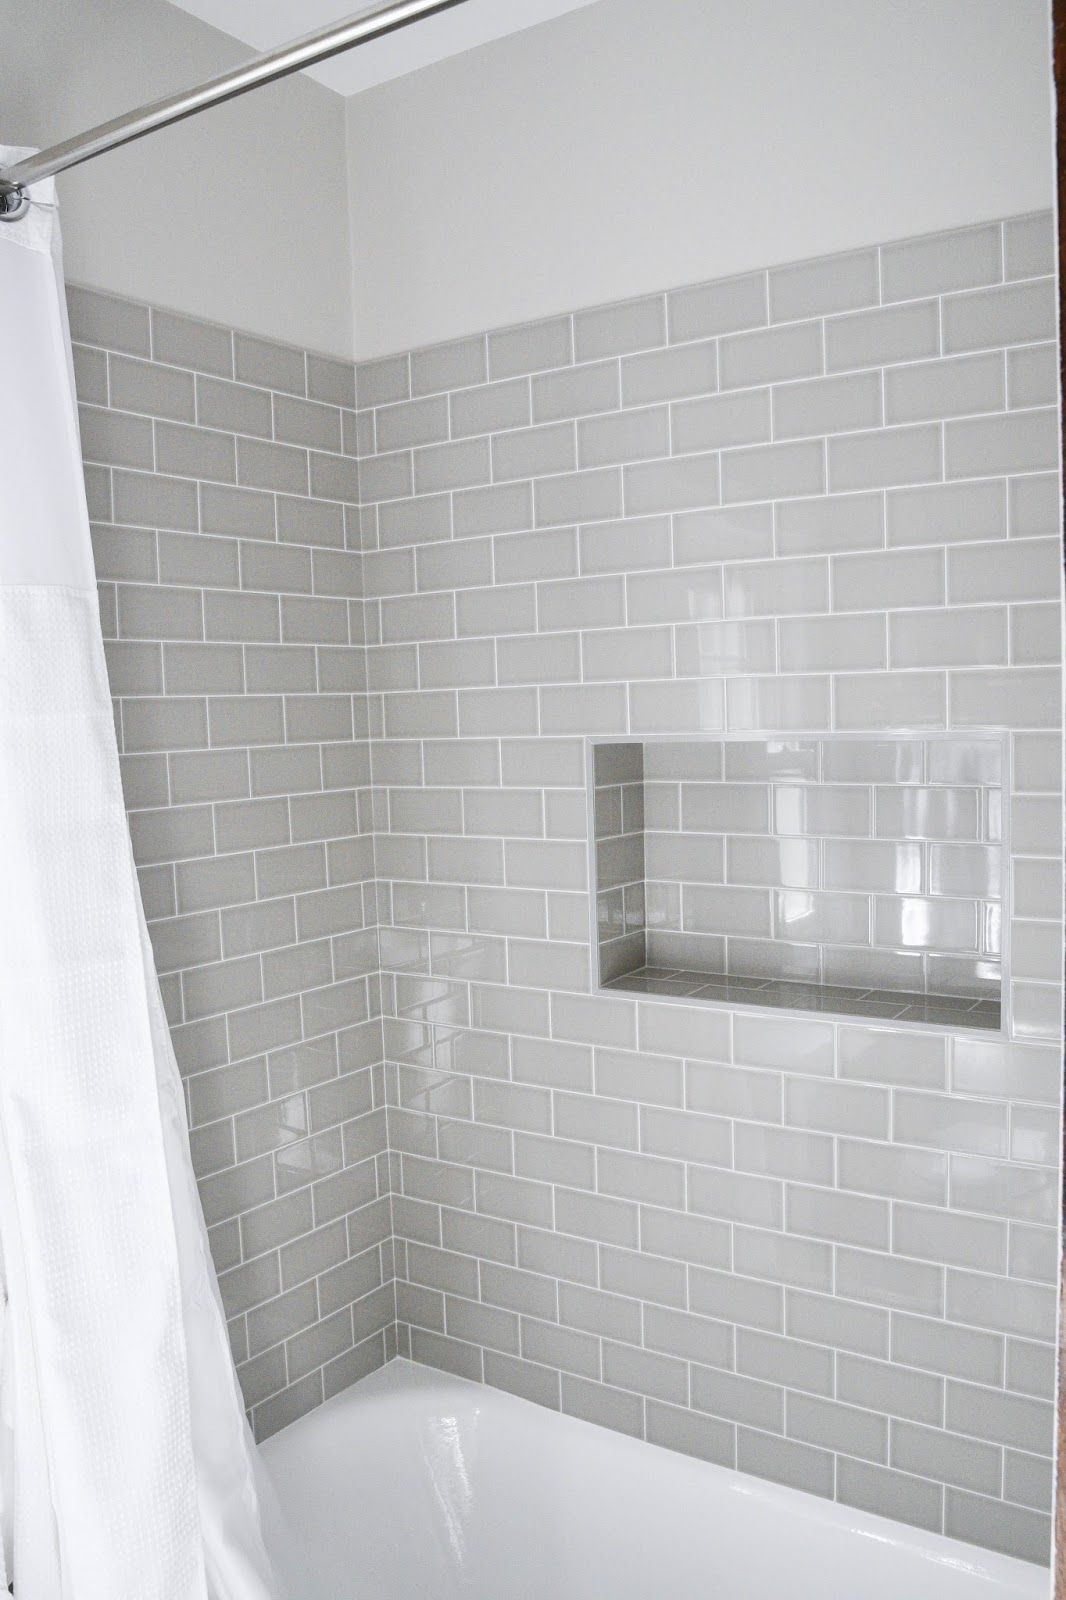 Modern meets traditional styled bathroom subway tile for Modern bathroom tile designs pictures